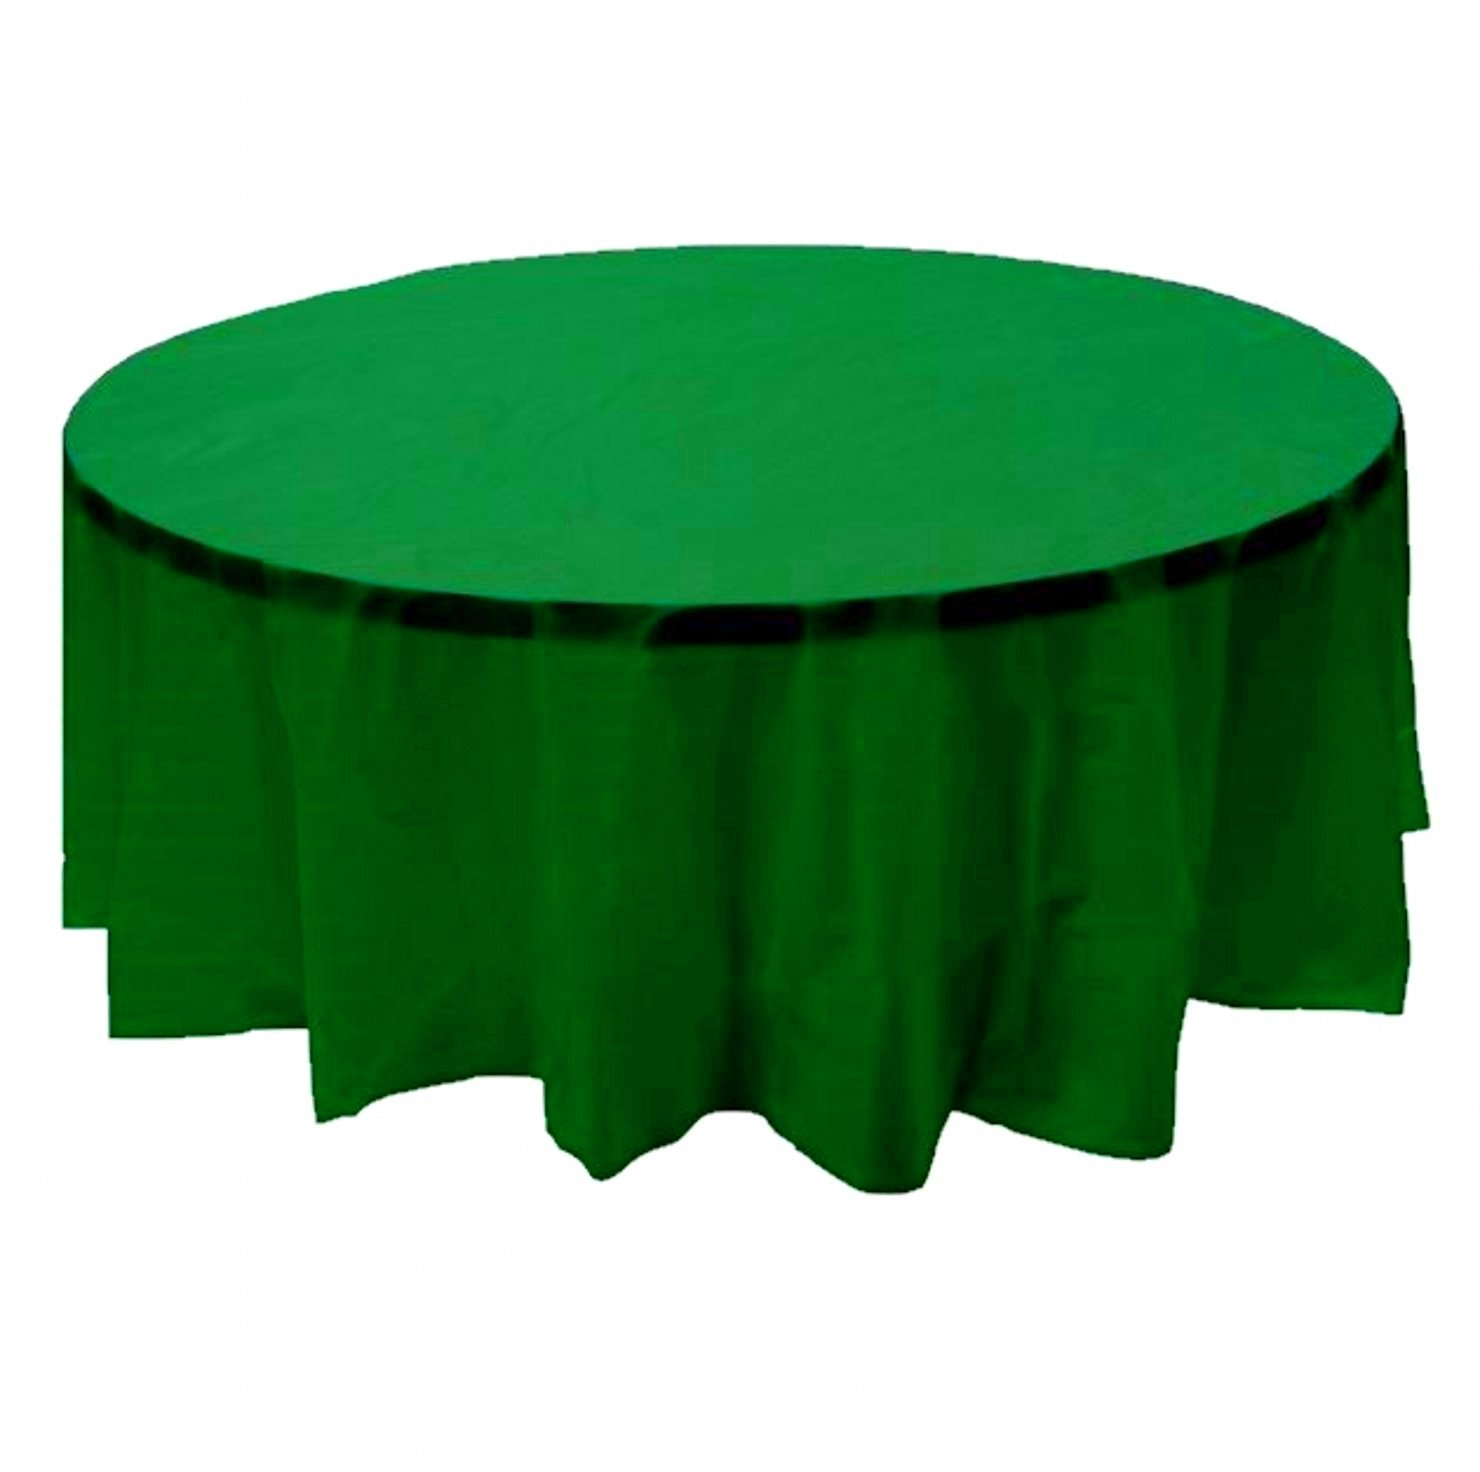 24 pcs (1 case) of Plastic Heavy Duty Premium Round tablecloths 84'' Diameter Table Cover - Kelly Green